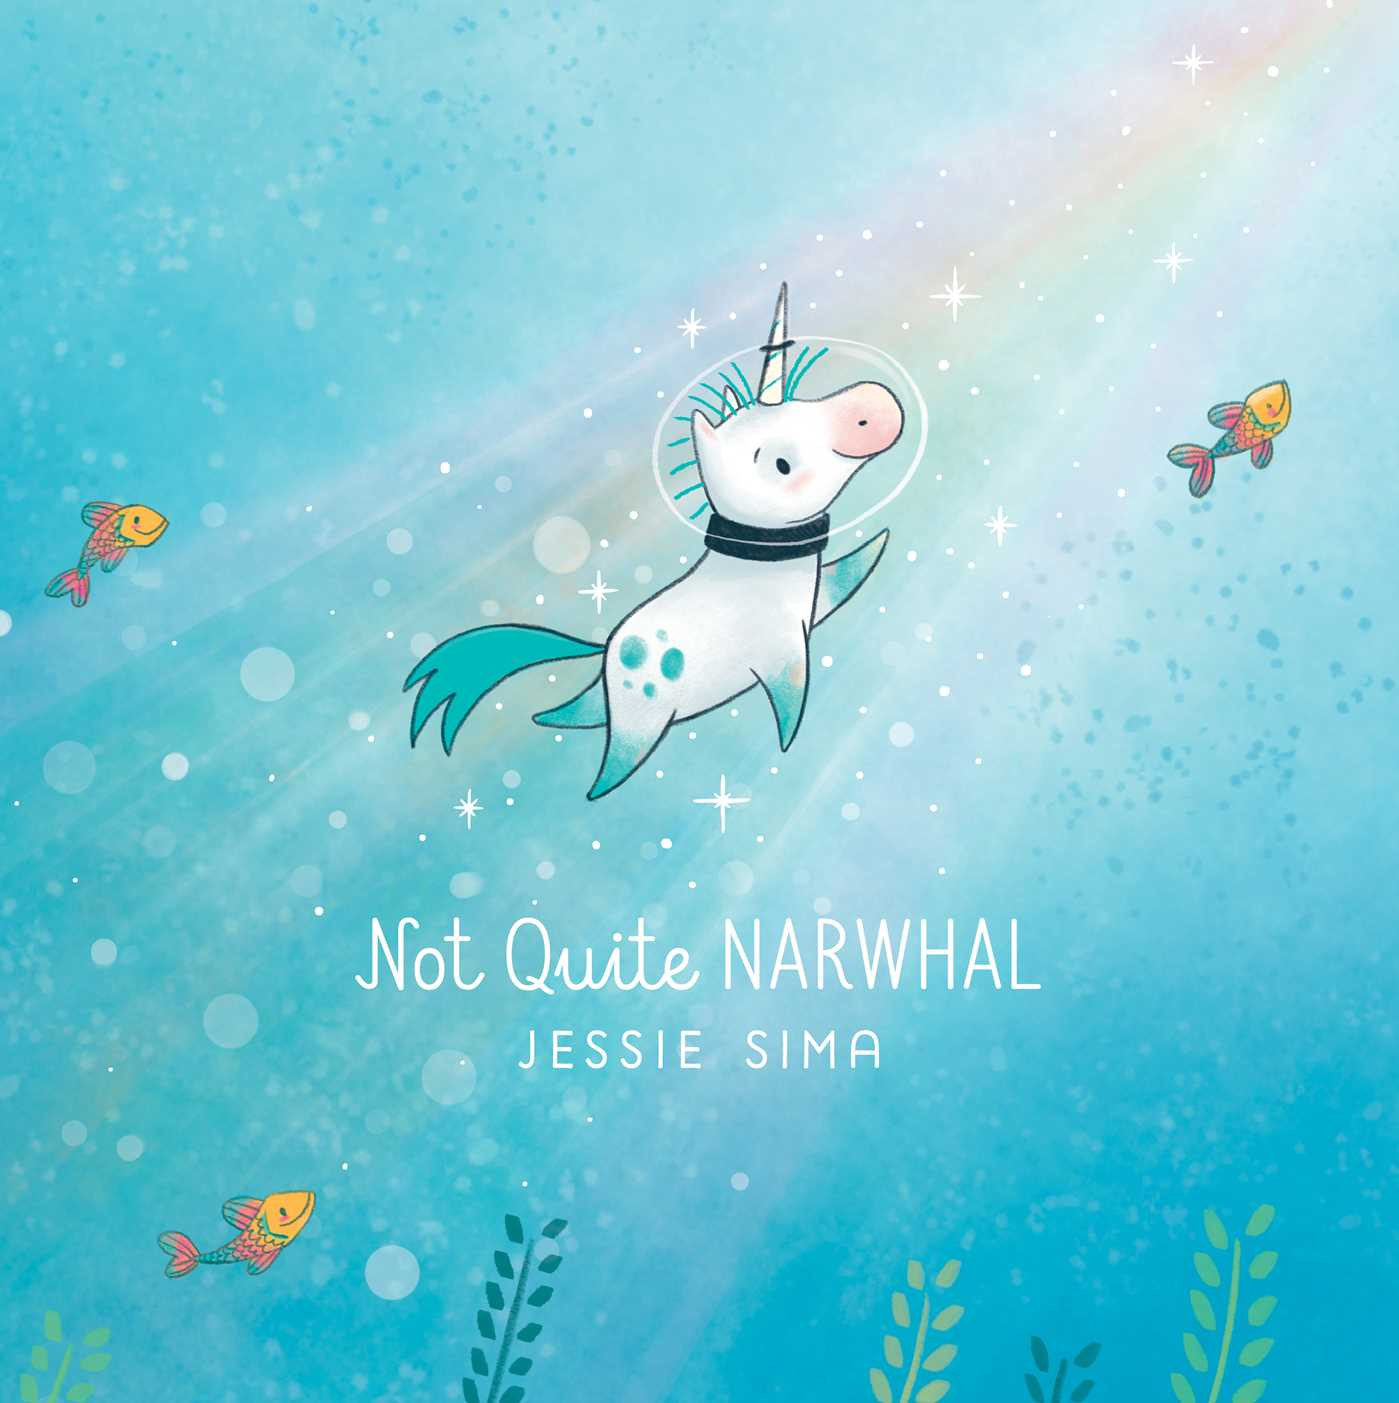 """Not Quite Narwhal"" by Jessie Sima"